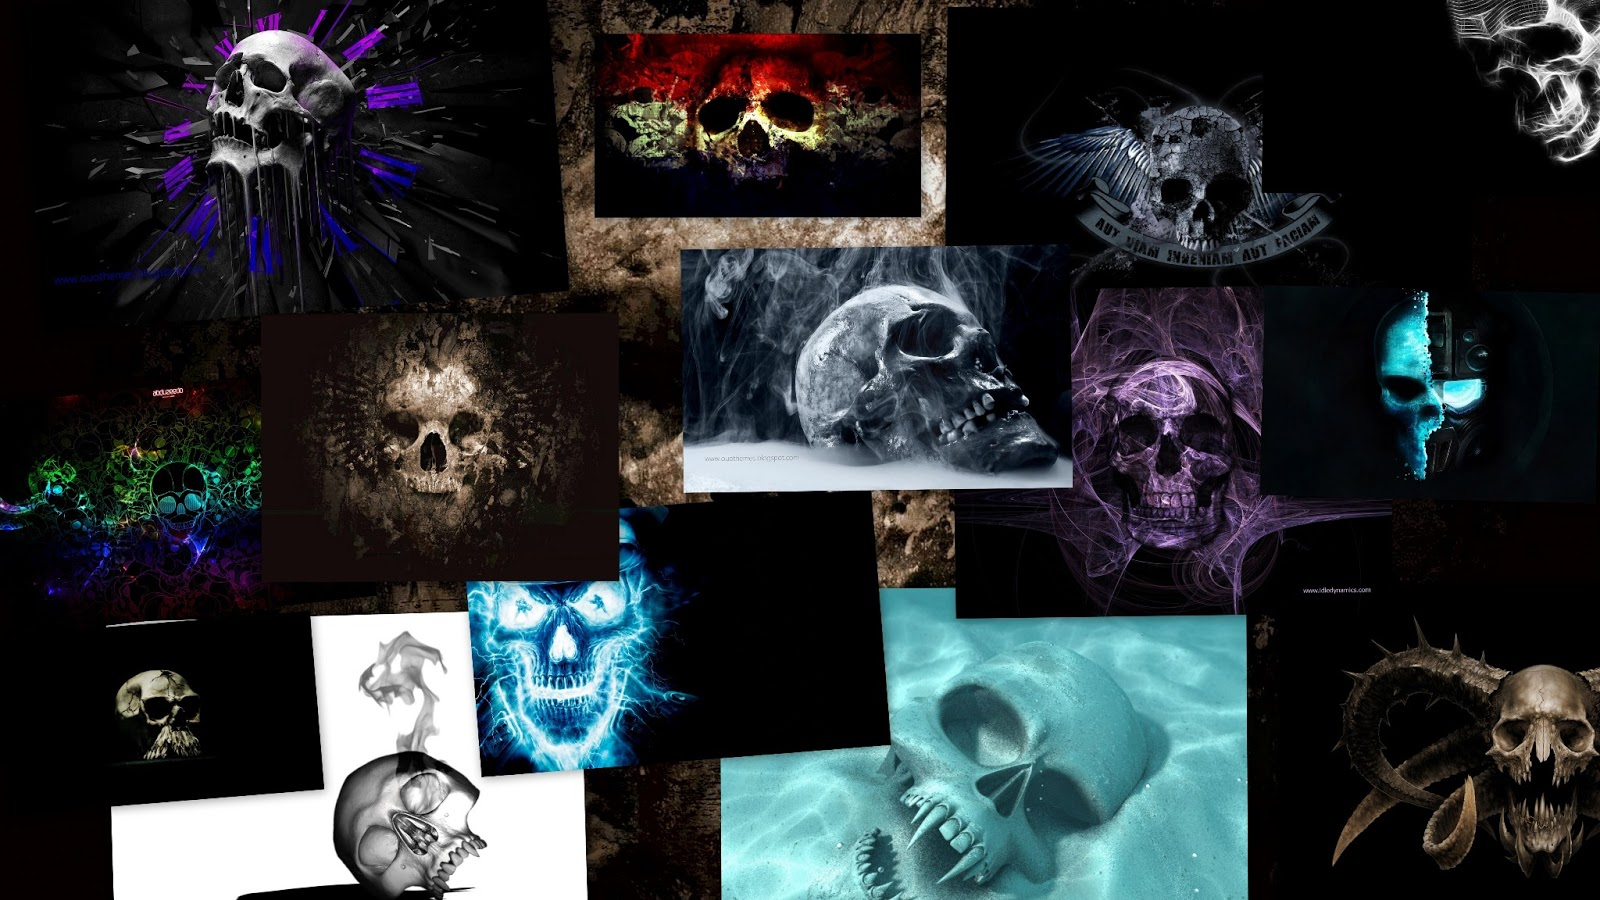 skull wallpaper for windows 7 - photo #29